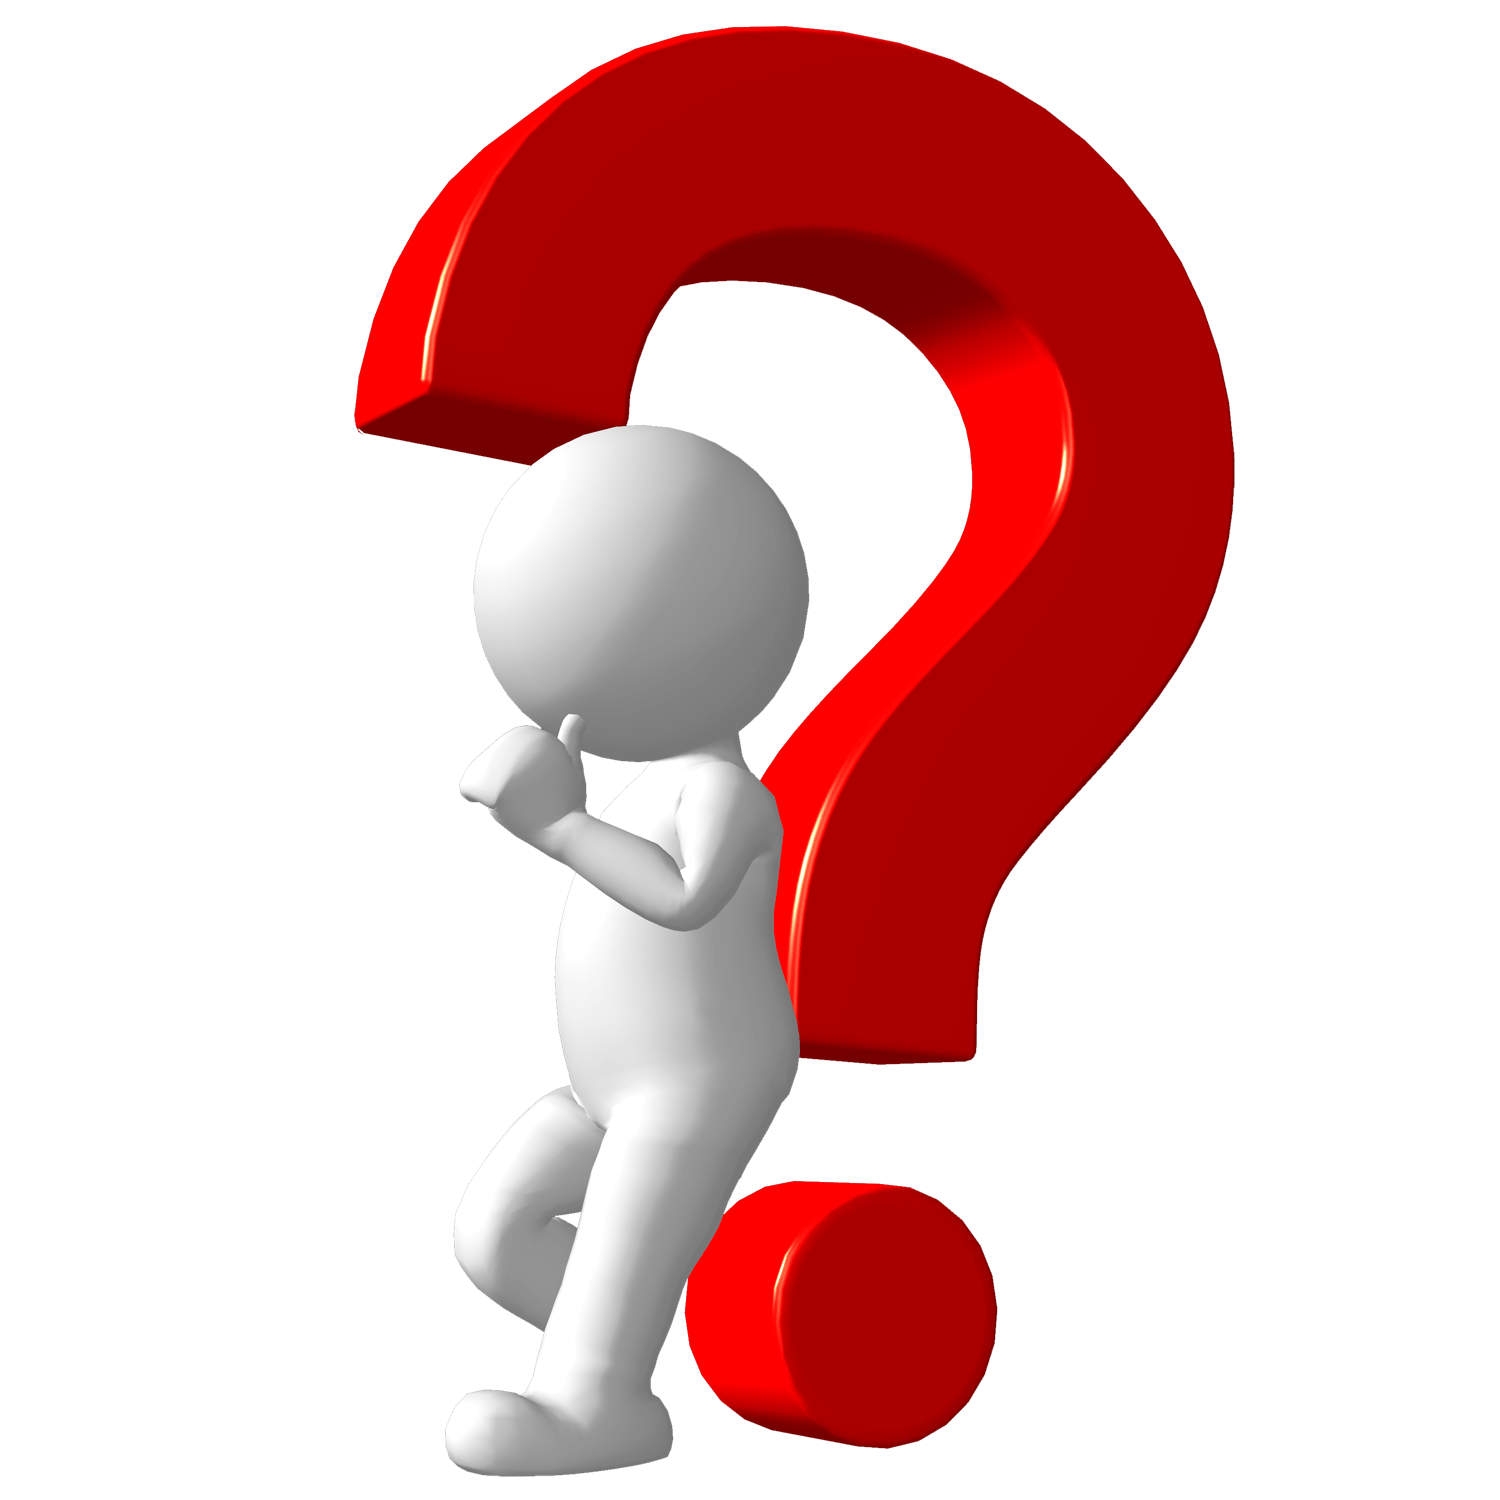 question-mark-icon-png-clipart-best-GHJOjX-clipart